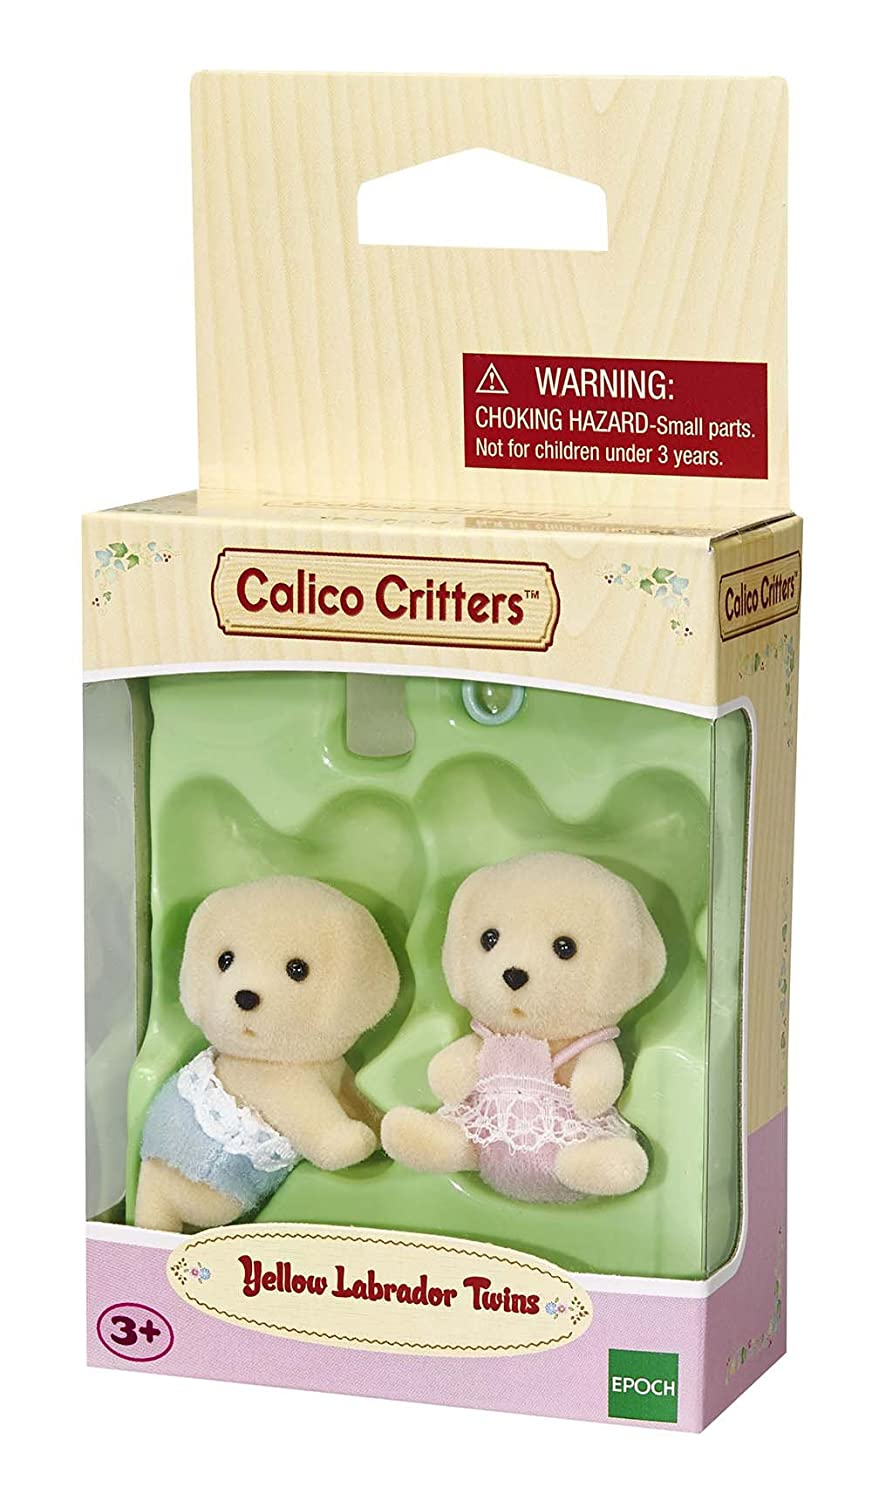 amazon com calico critters yellow labrador twins industrial